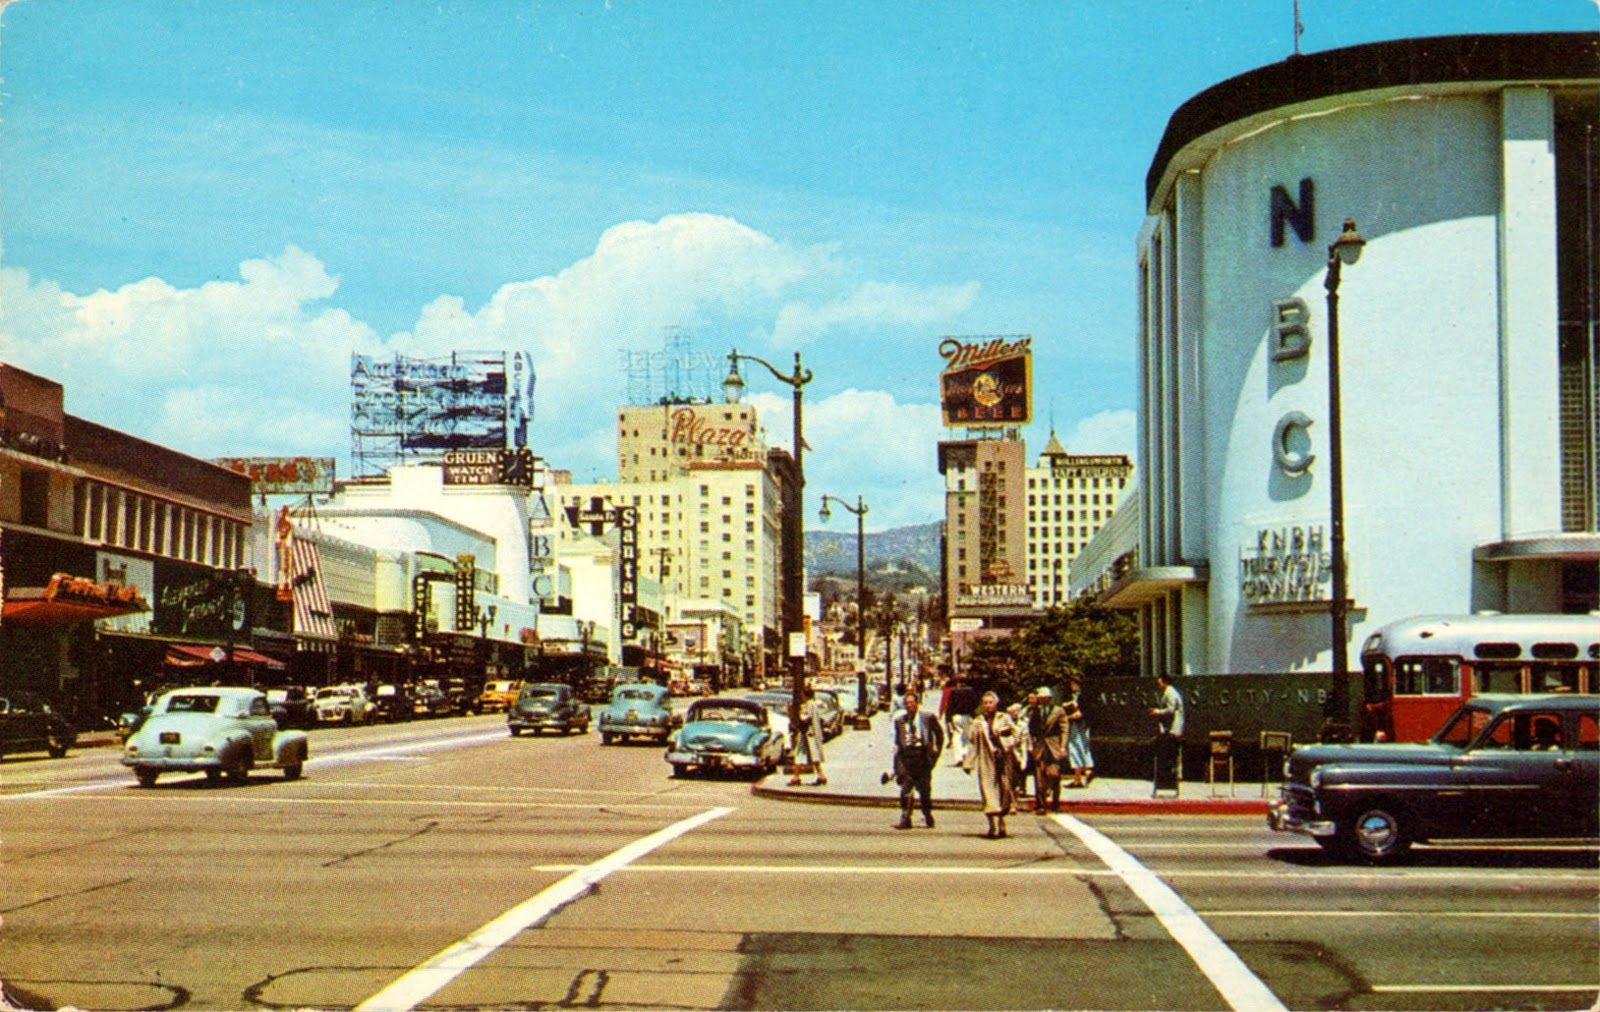 Transpress Nz Los Angeles Then And Now Hollywood California Los Angeles Hollywood Los Angeles History